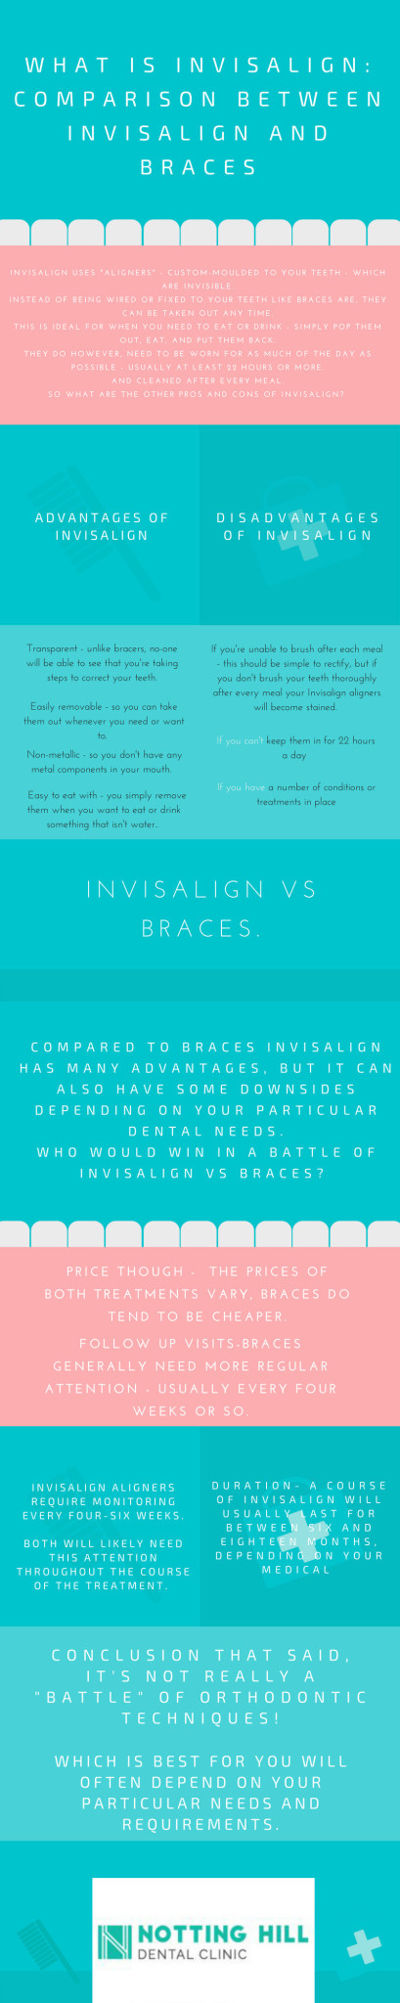 WHAT IS INVISALIGN: COMPARISON BETWEEN INVISALIGN AND BRACES